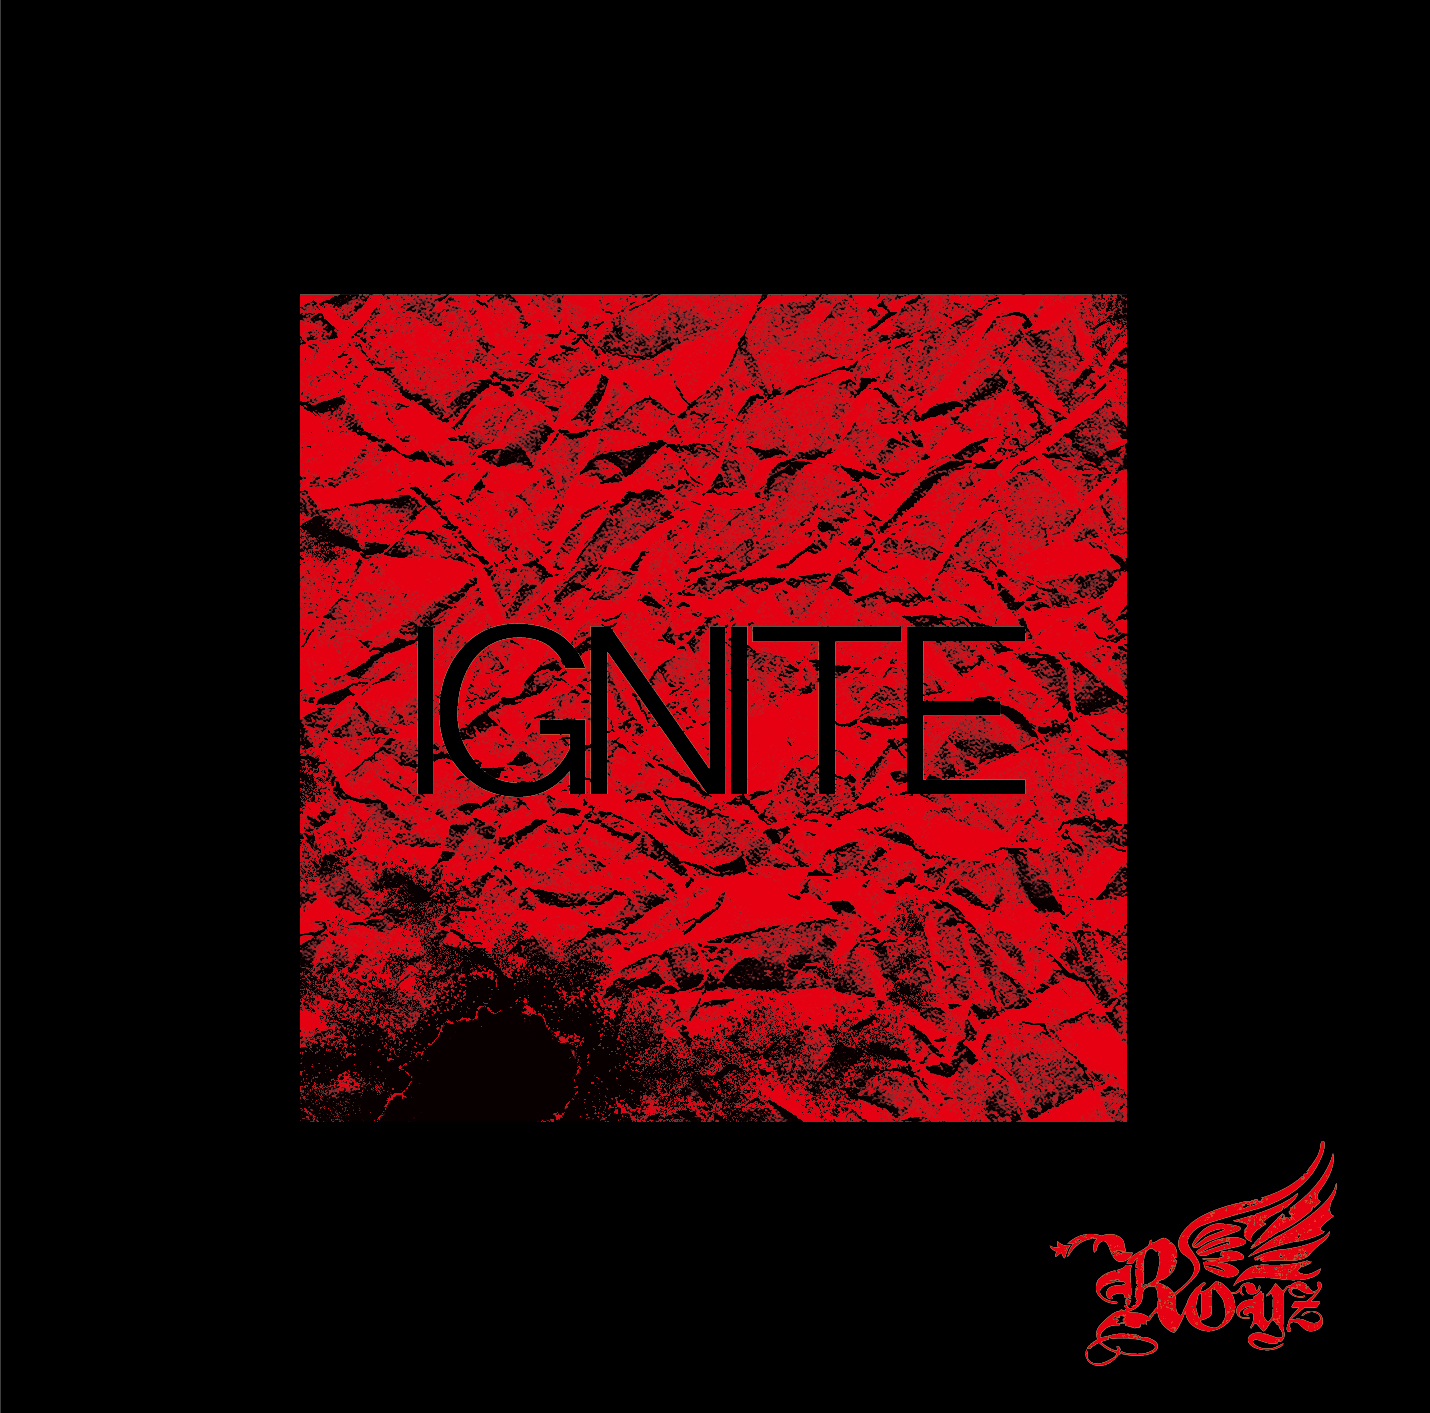 Royz 17th maxi single 「IGNITE」Dtype